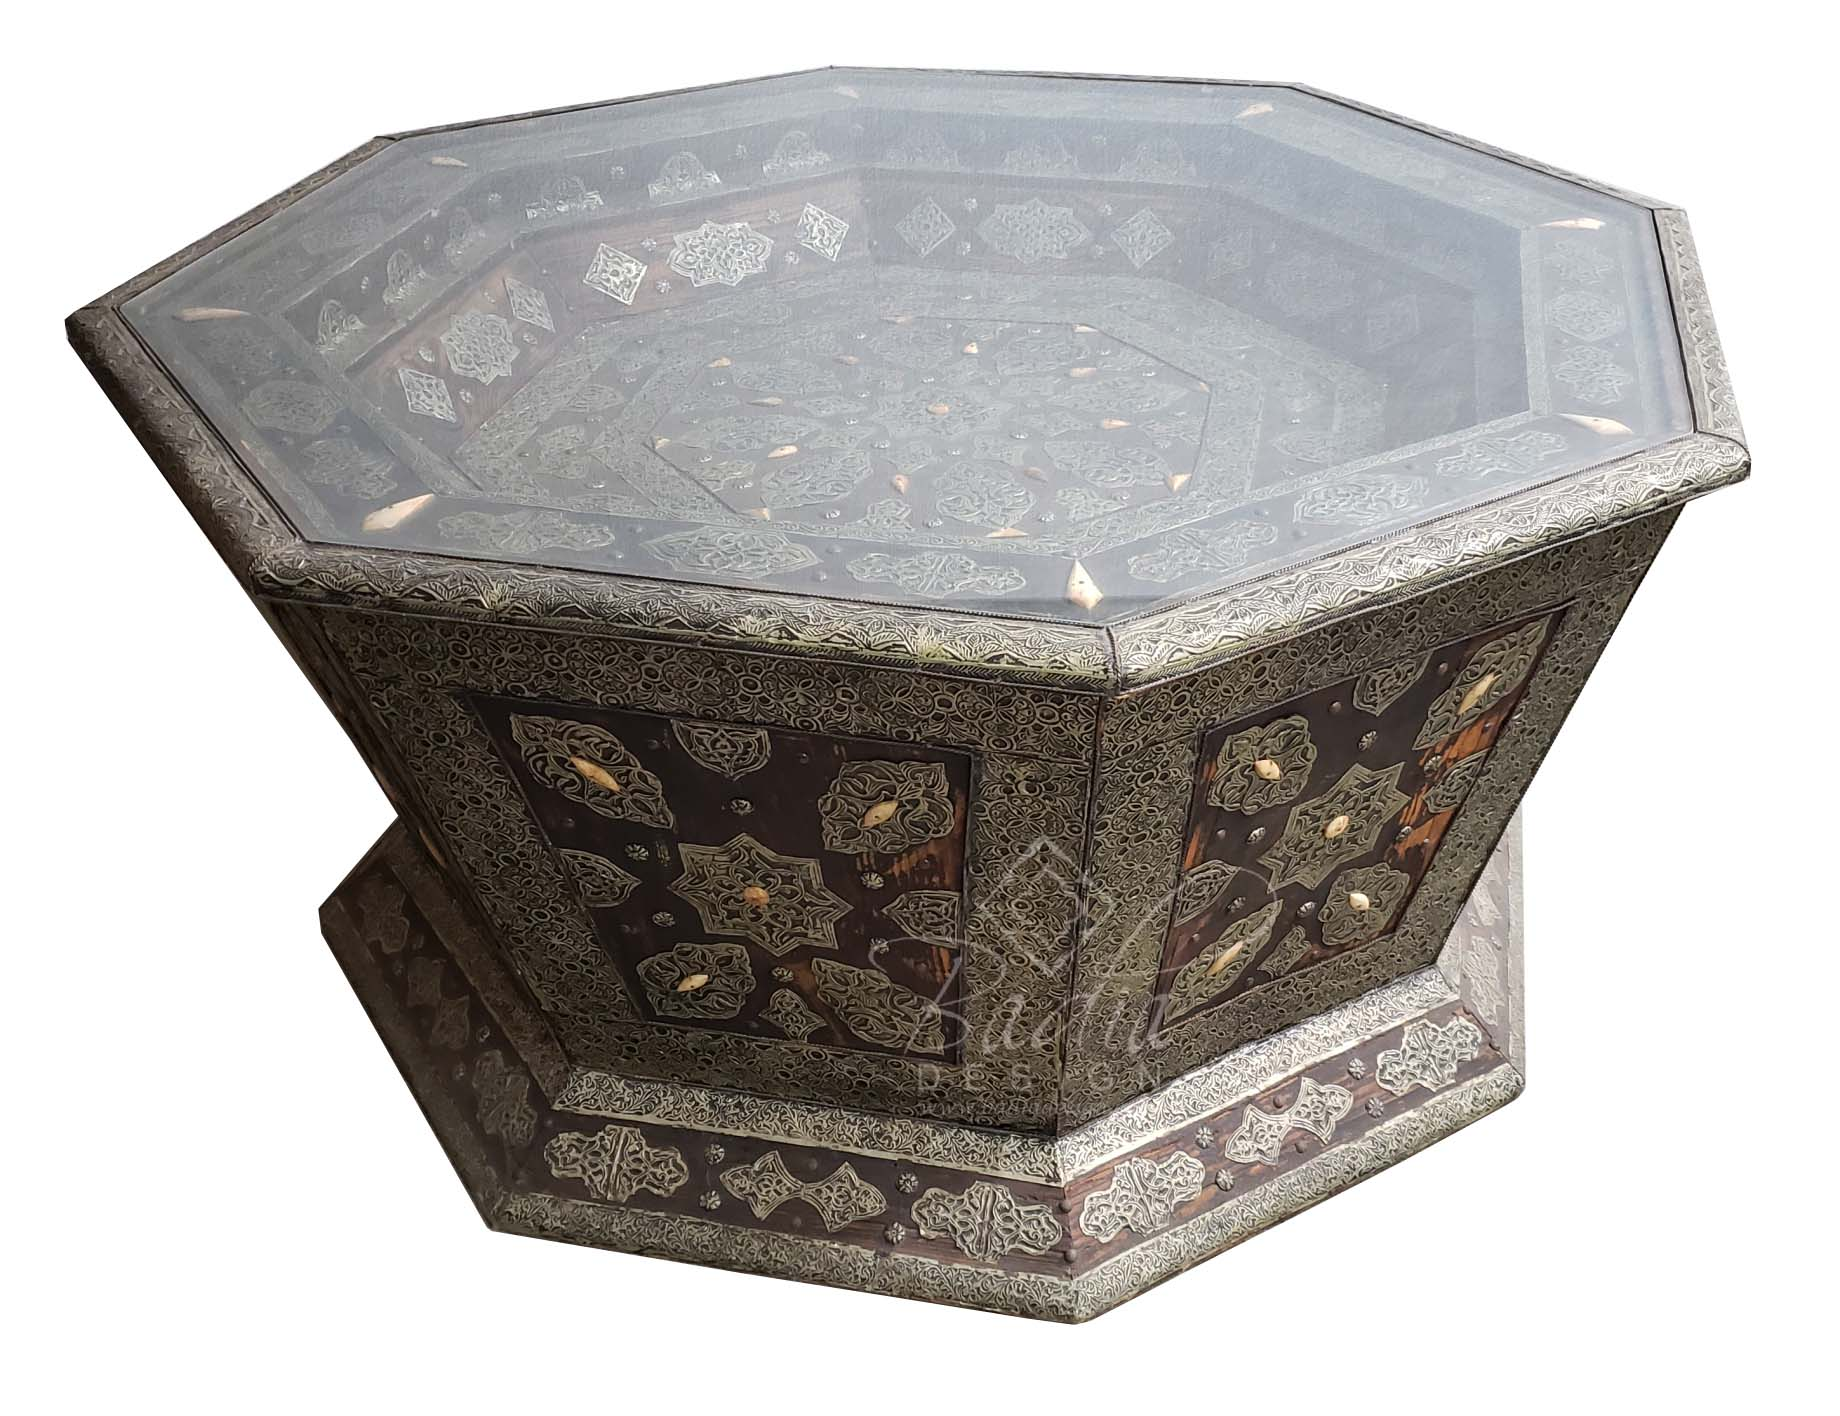 octagon-shaped-metal-and-bone-table-with-glass-top-mb-ct010-1.jpg